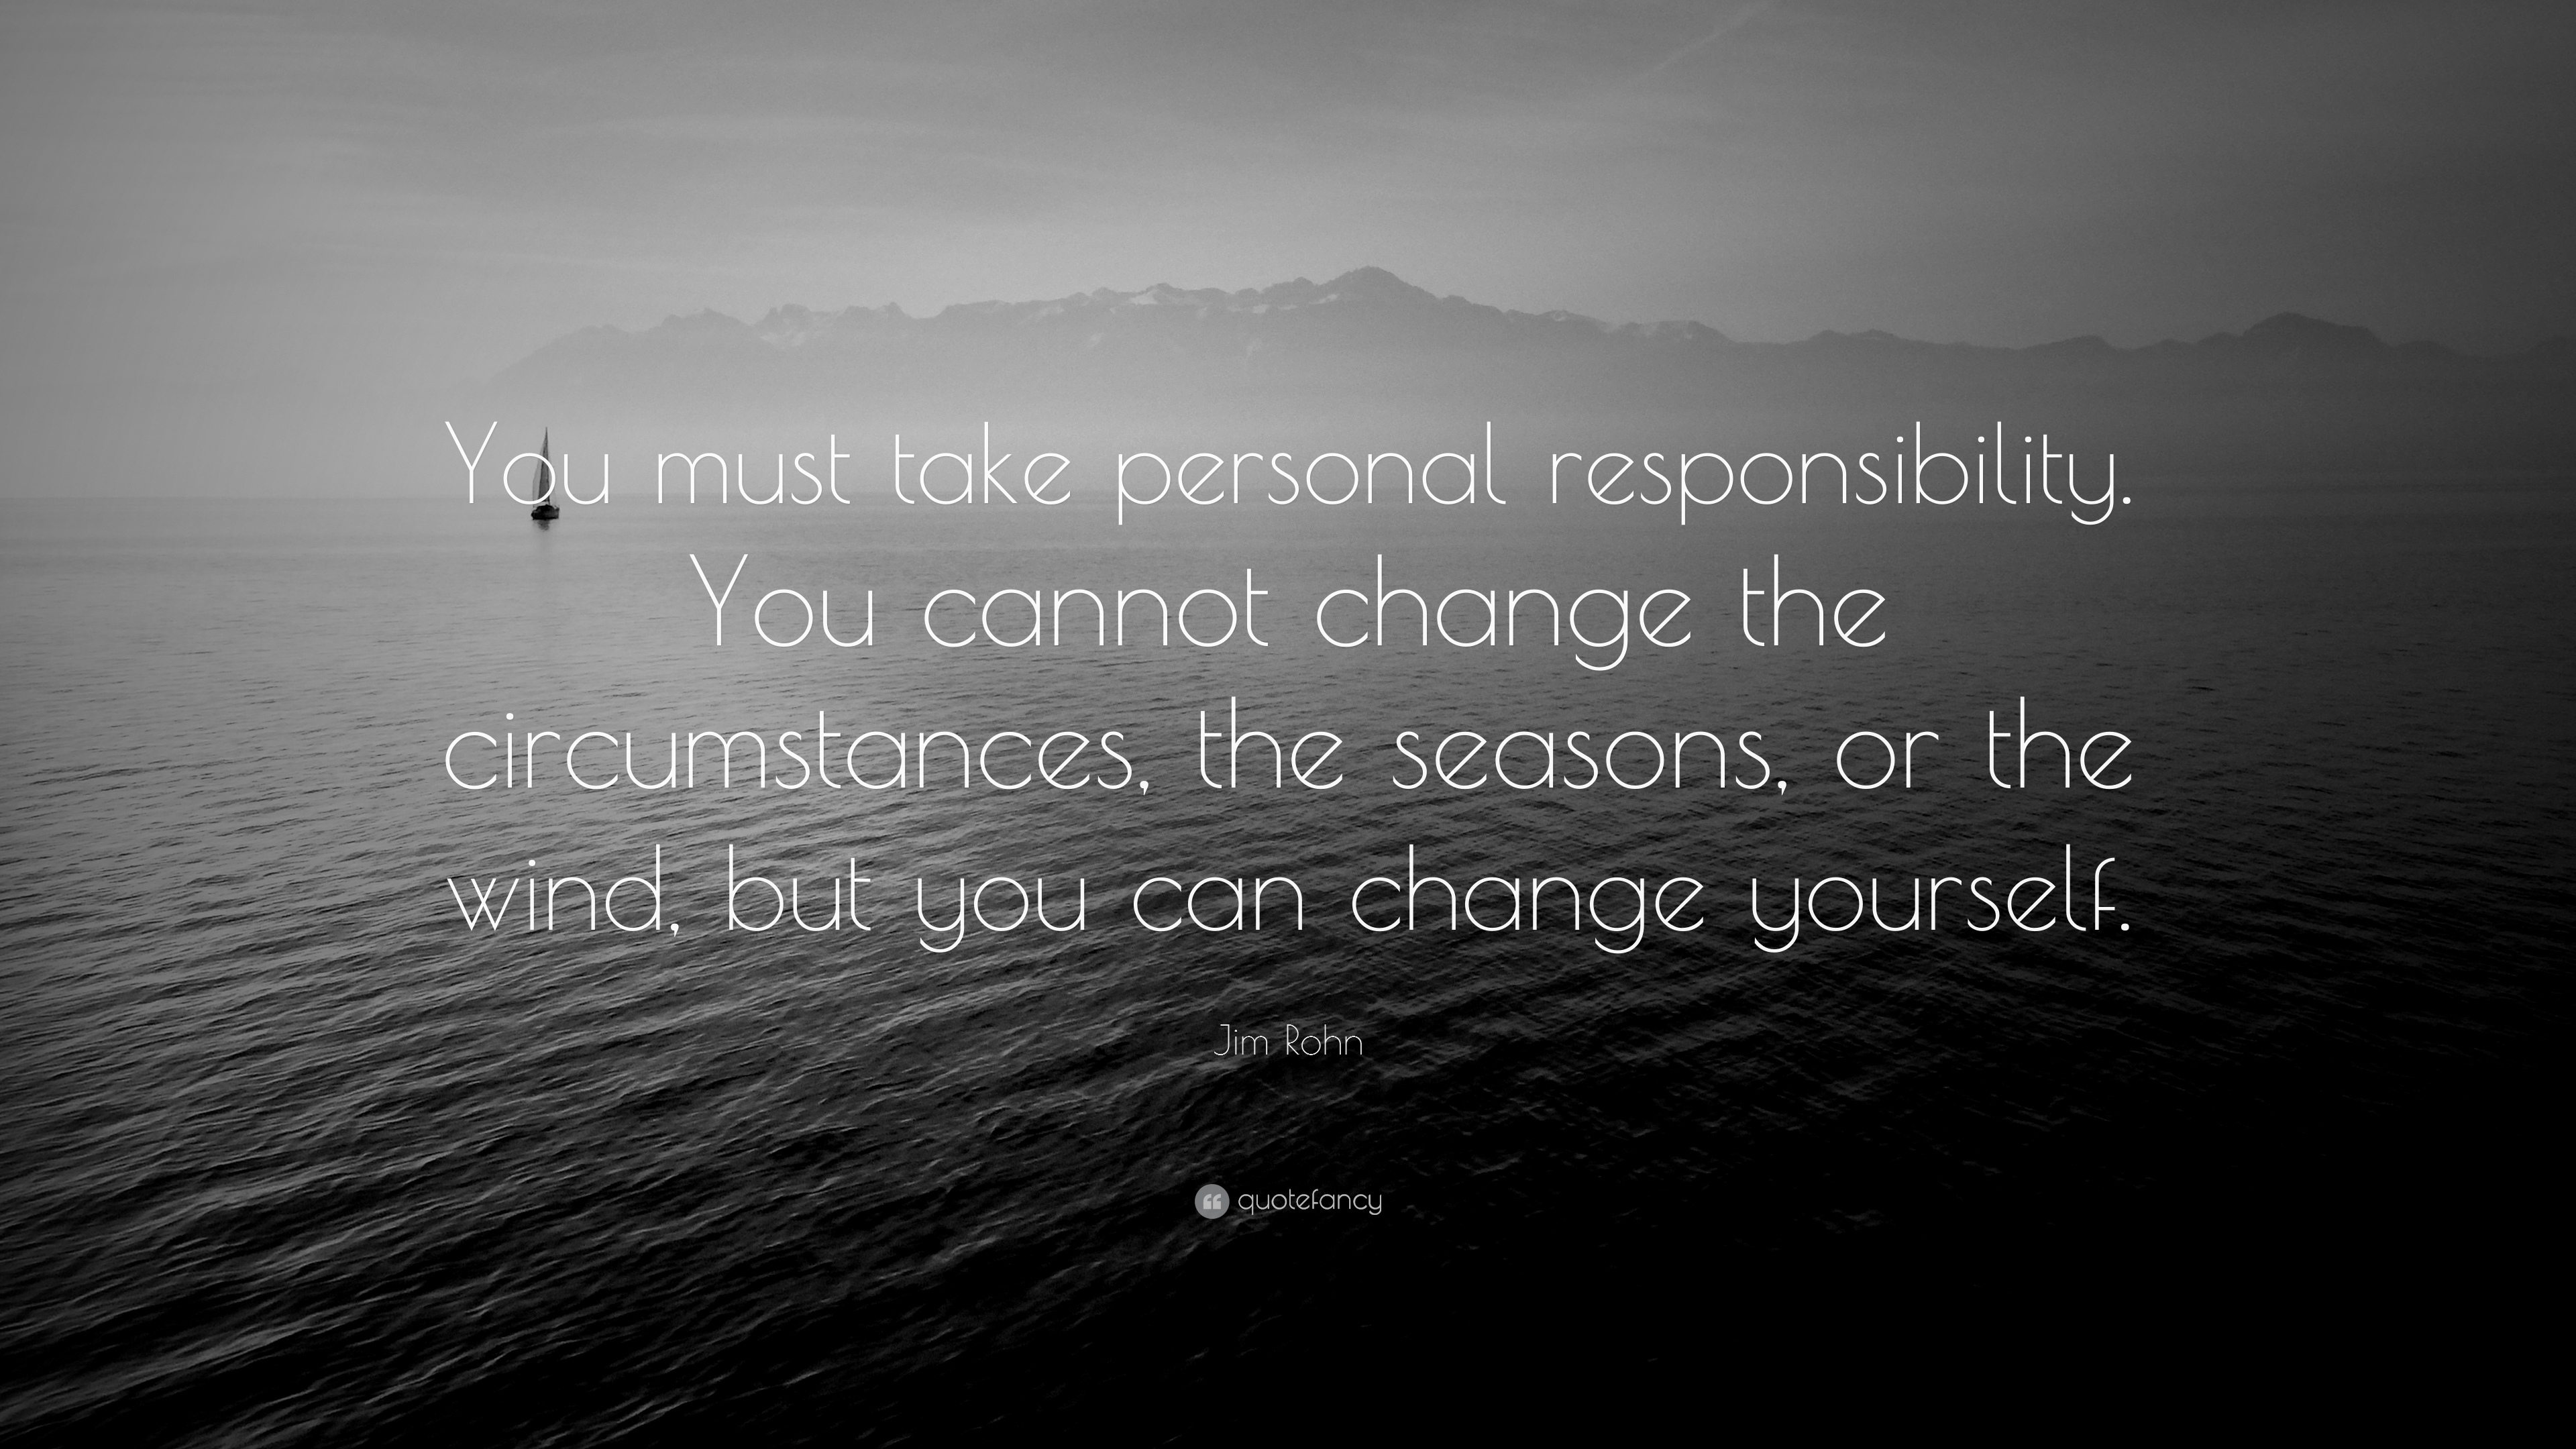 jim rohn quote you must take personal responsibility you cannot change the circumstances